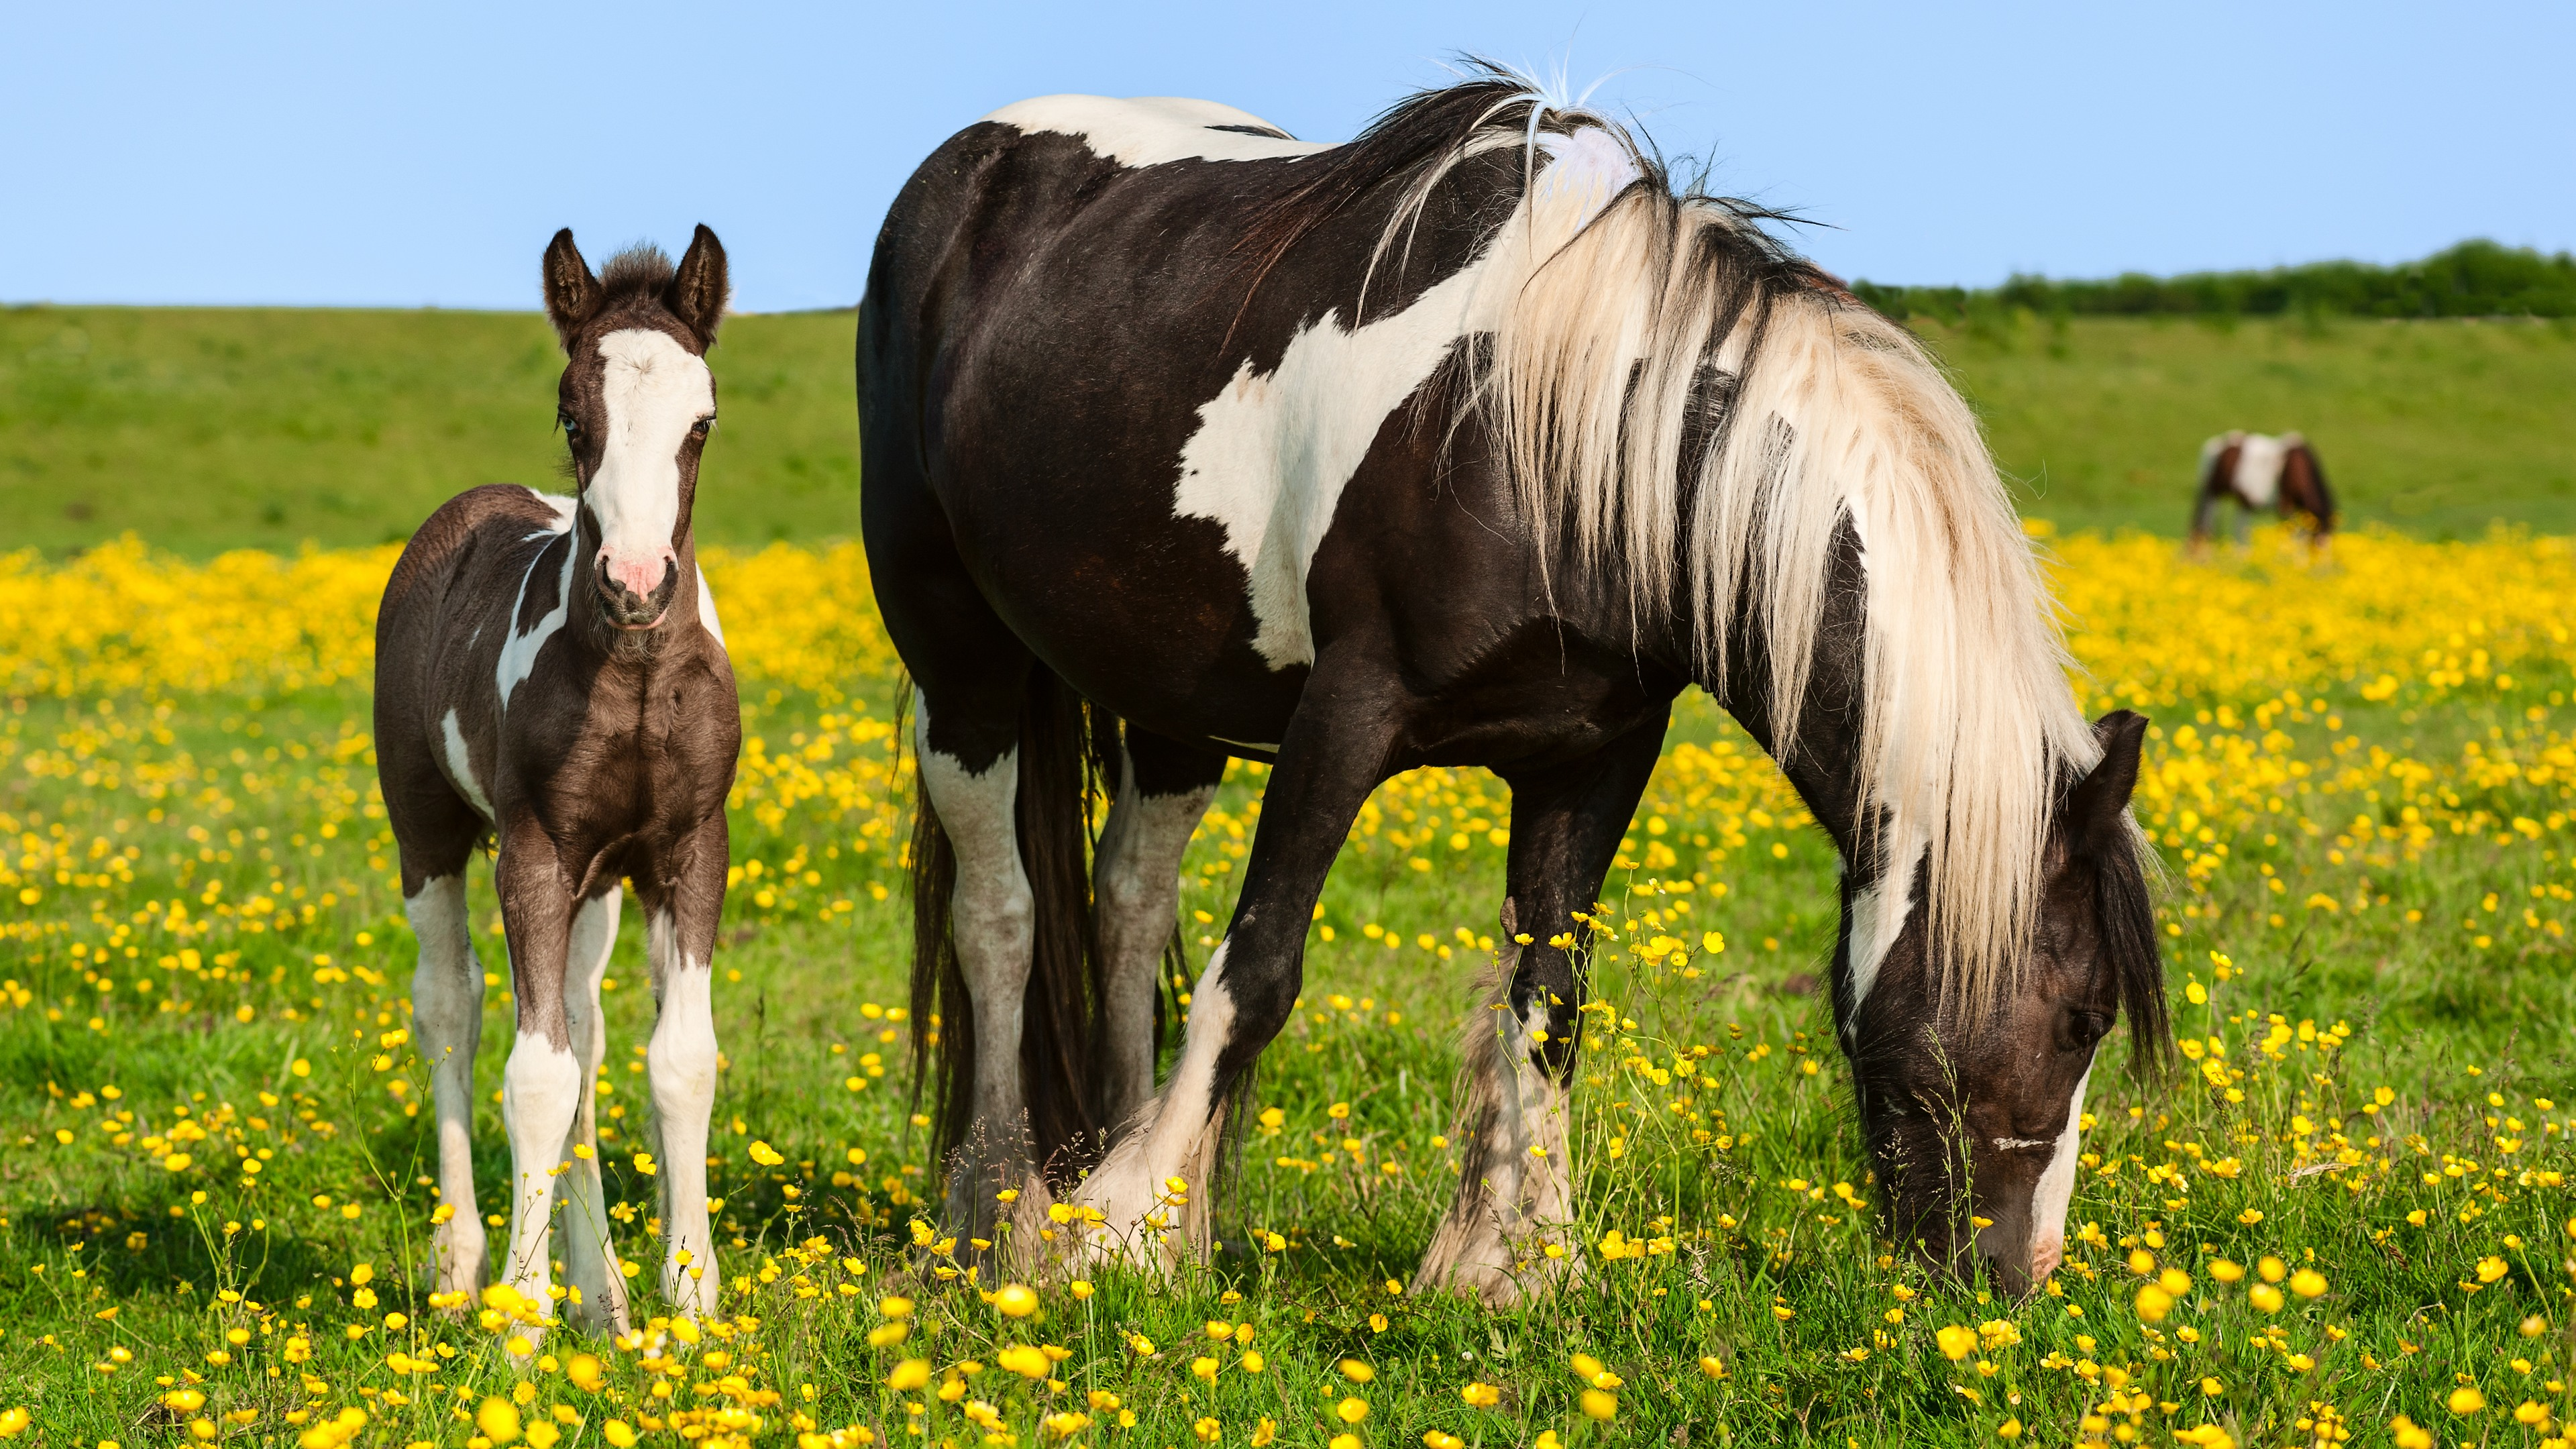 Cute Cartoon Horse Wallpaper A Horse With Foal In A Field With Flowers